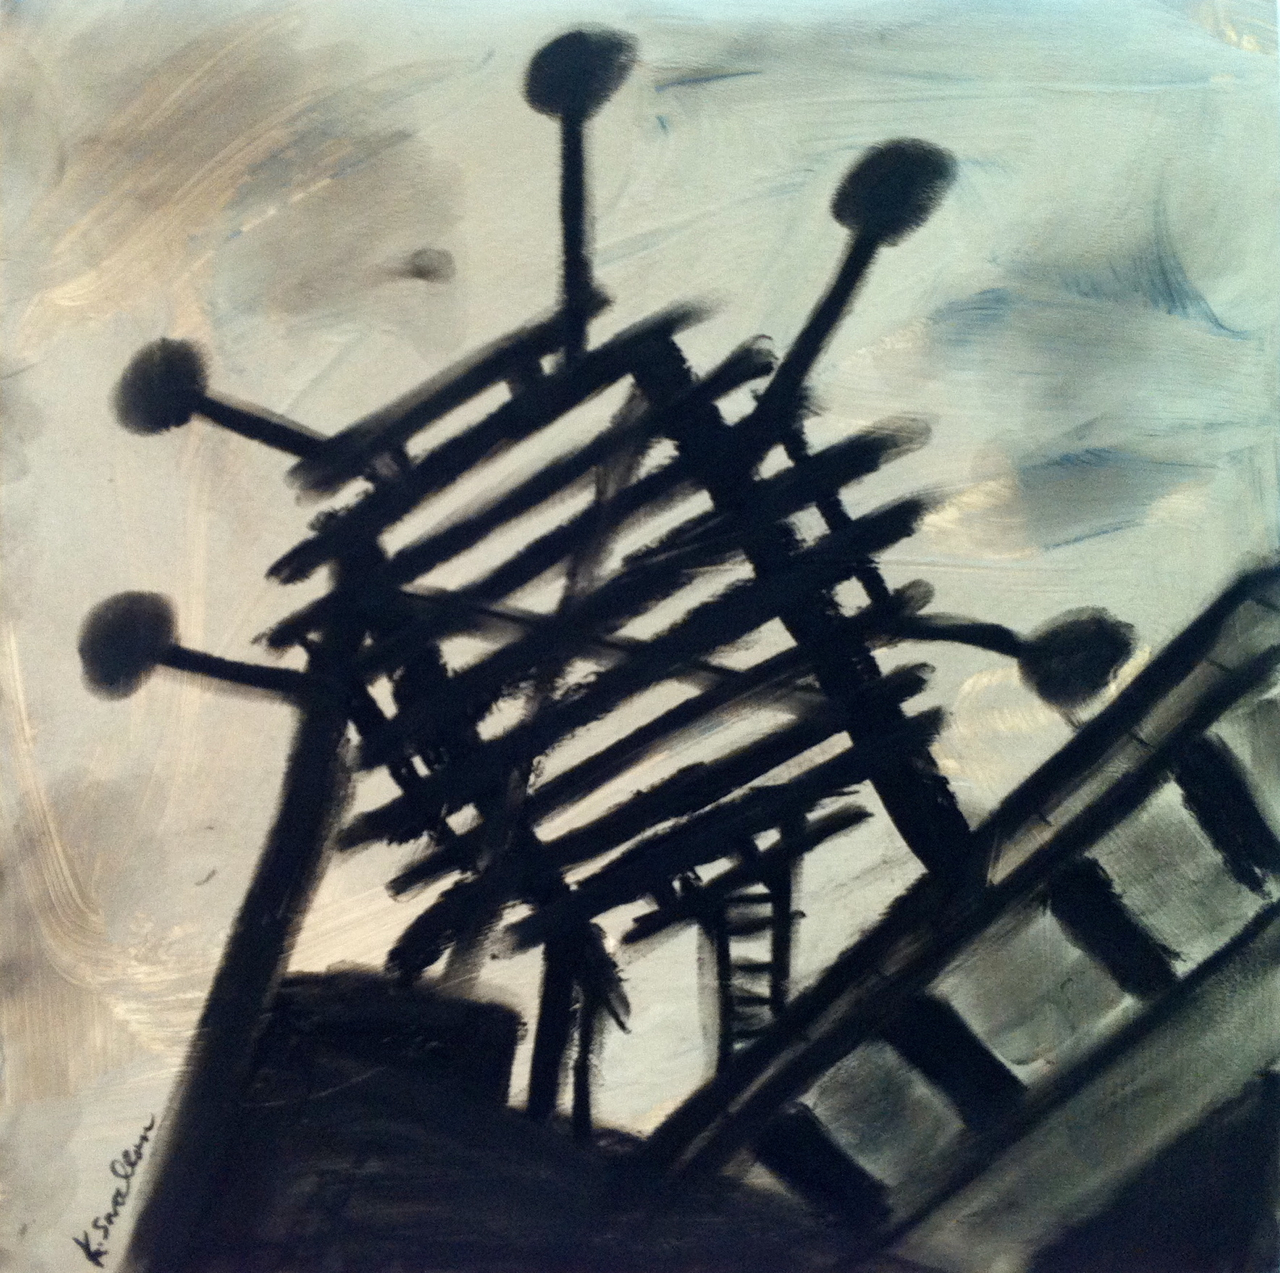 Water Tank Platform, acrylic and charcoal on record album cover, 12x12, 2012